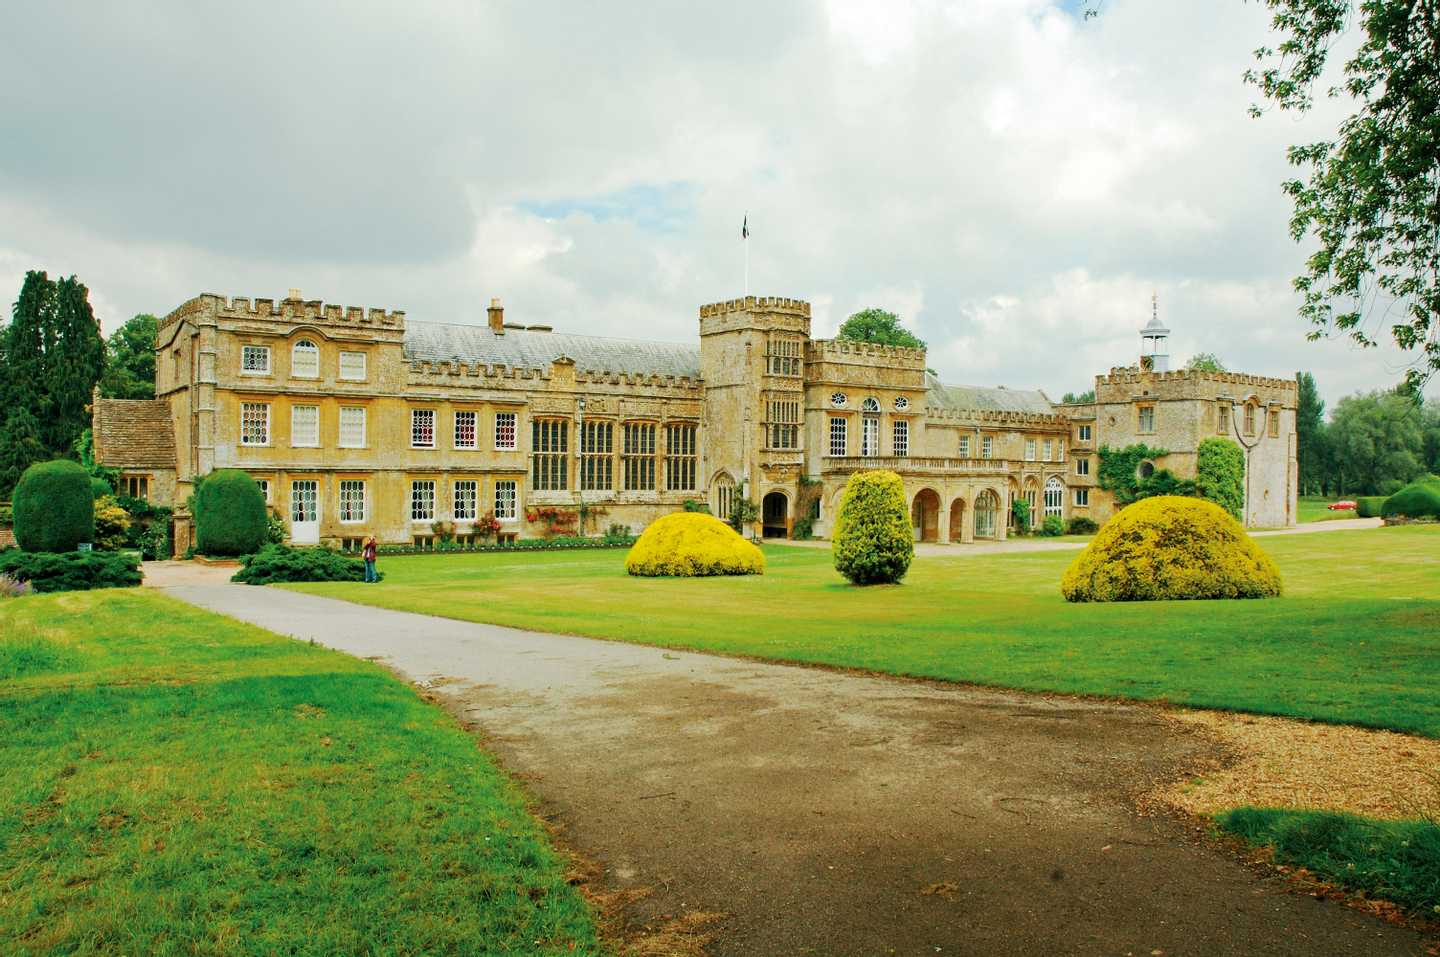 Exterior of Forde Abbey and Gardens